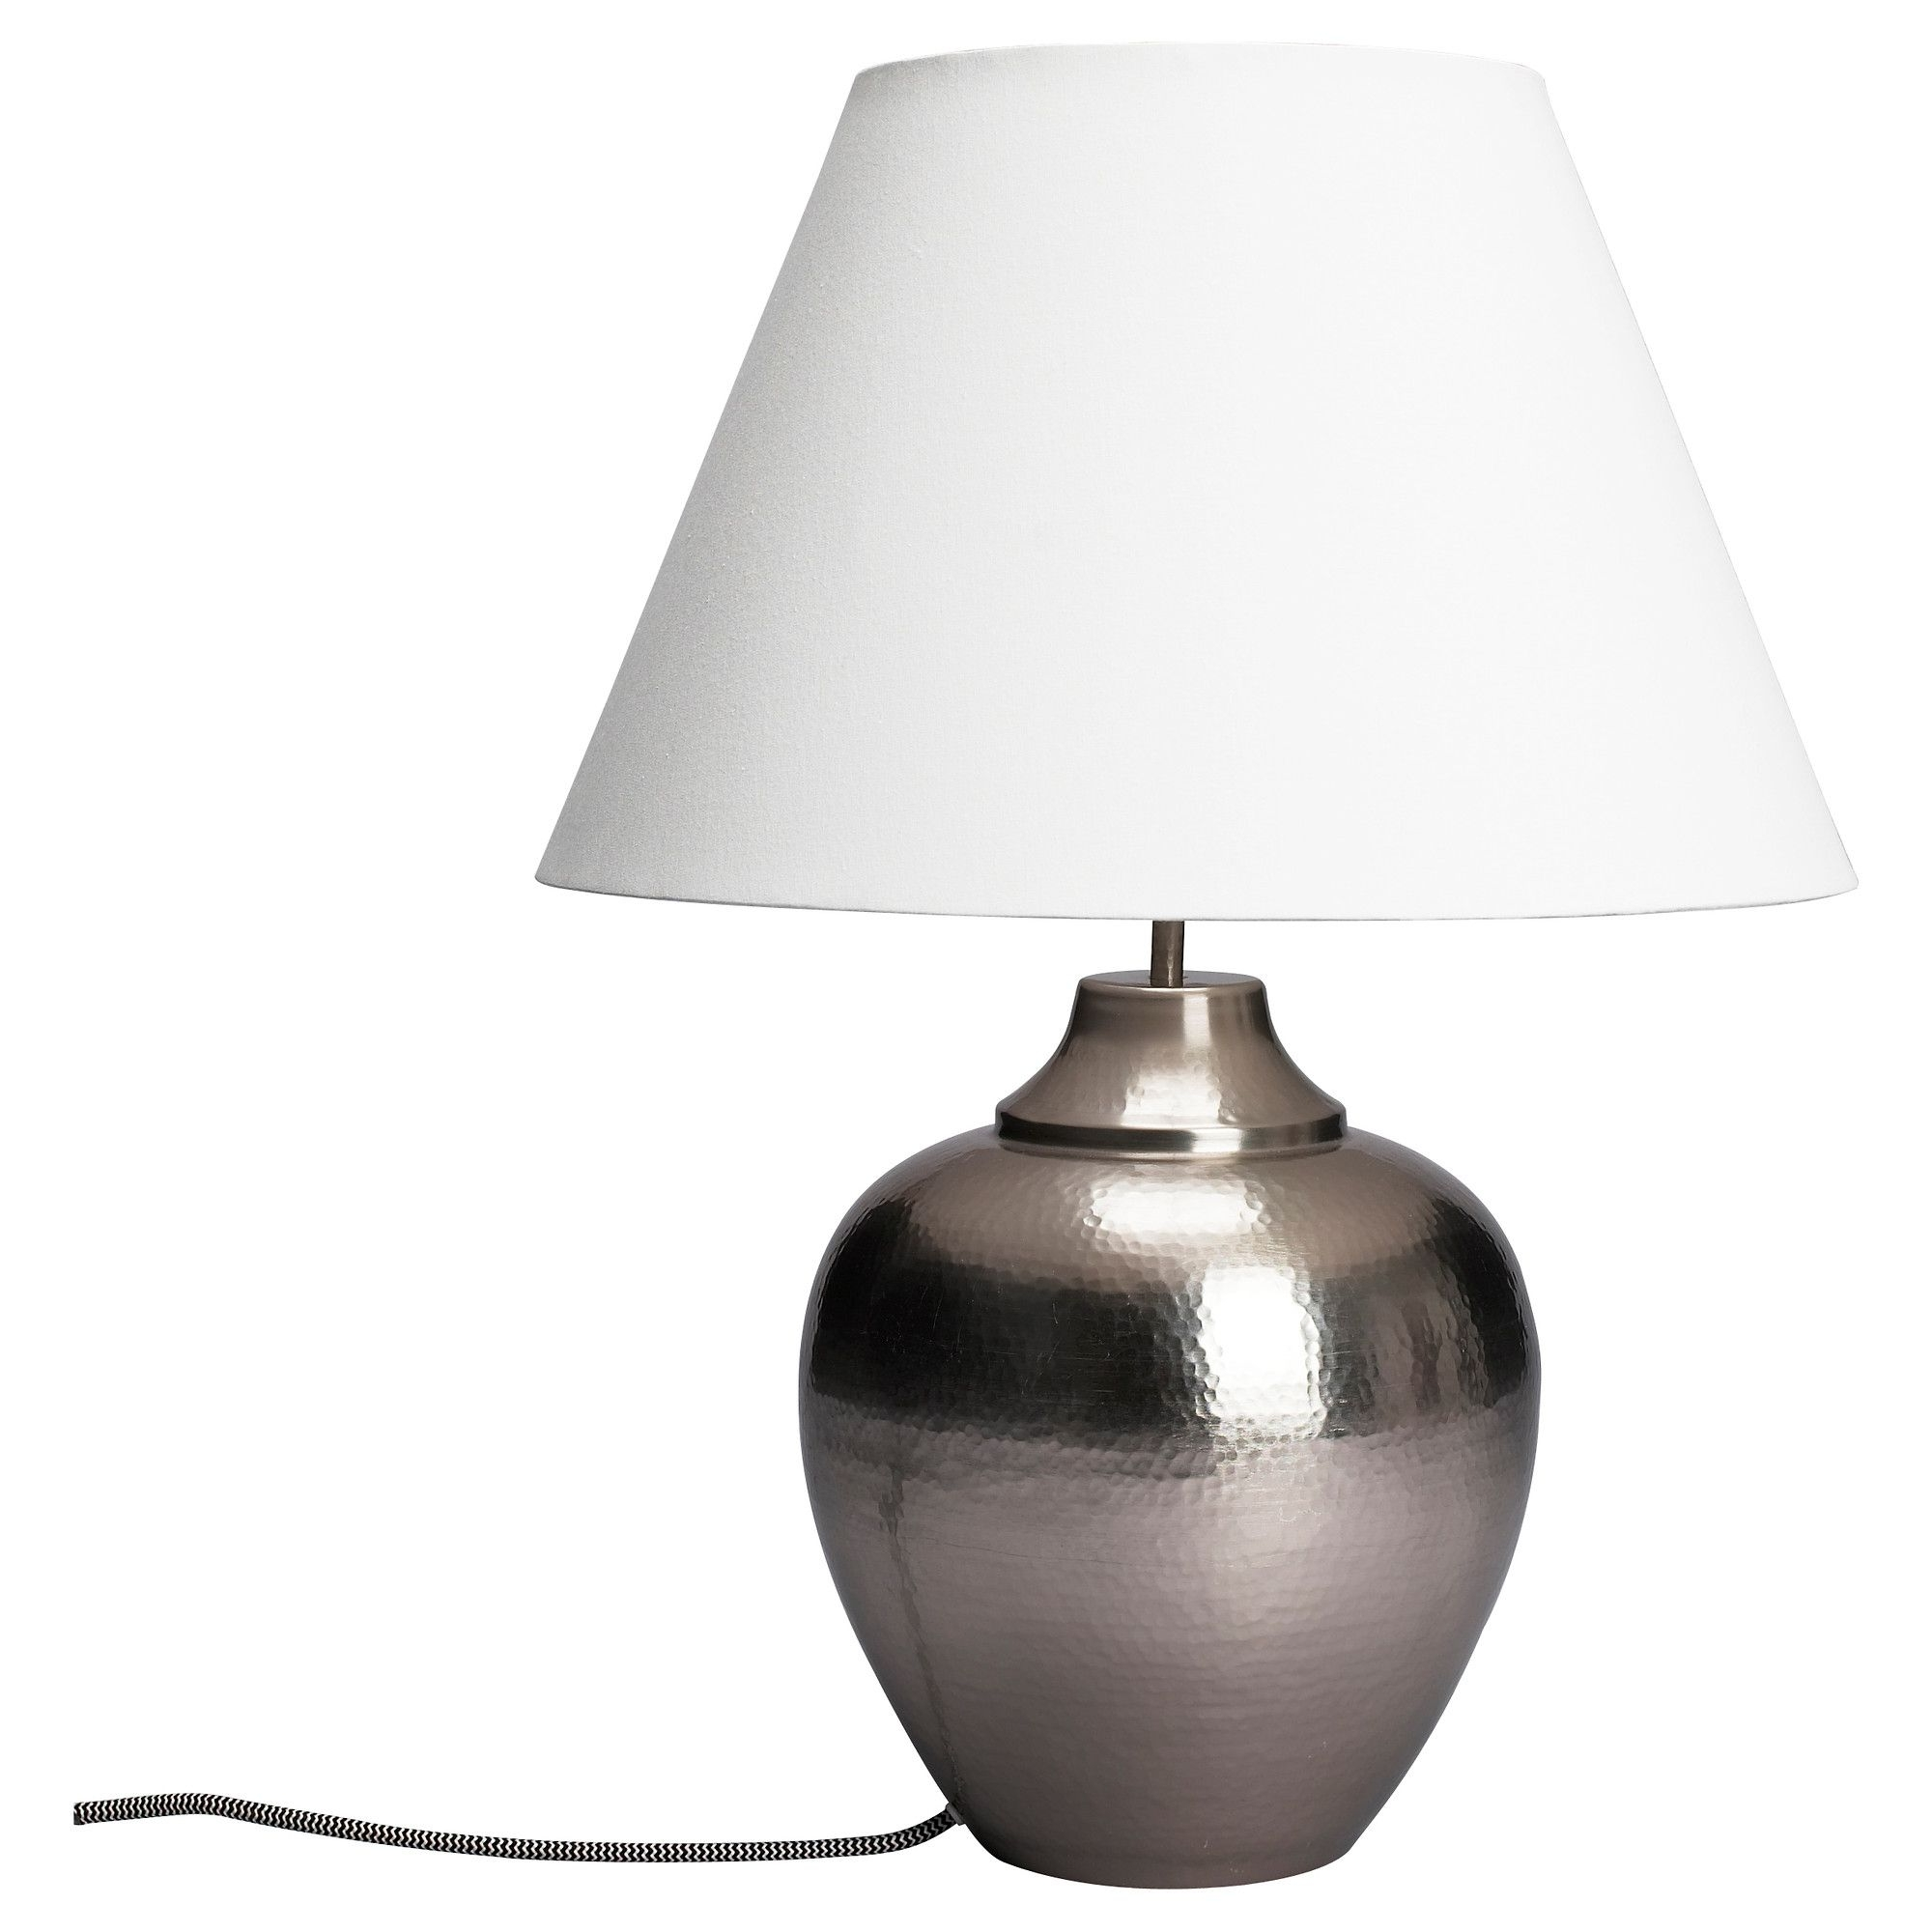 Most Current Living Room Table Lamps At Ikea Inside Åsele Table Lamp – Ikea I Don't Know Why I Love This Lamp So Much (View 13 of 20)